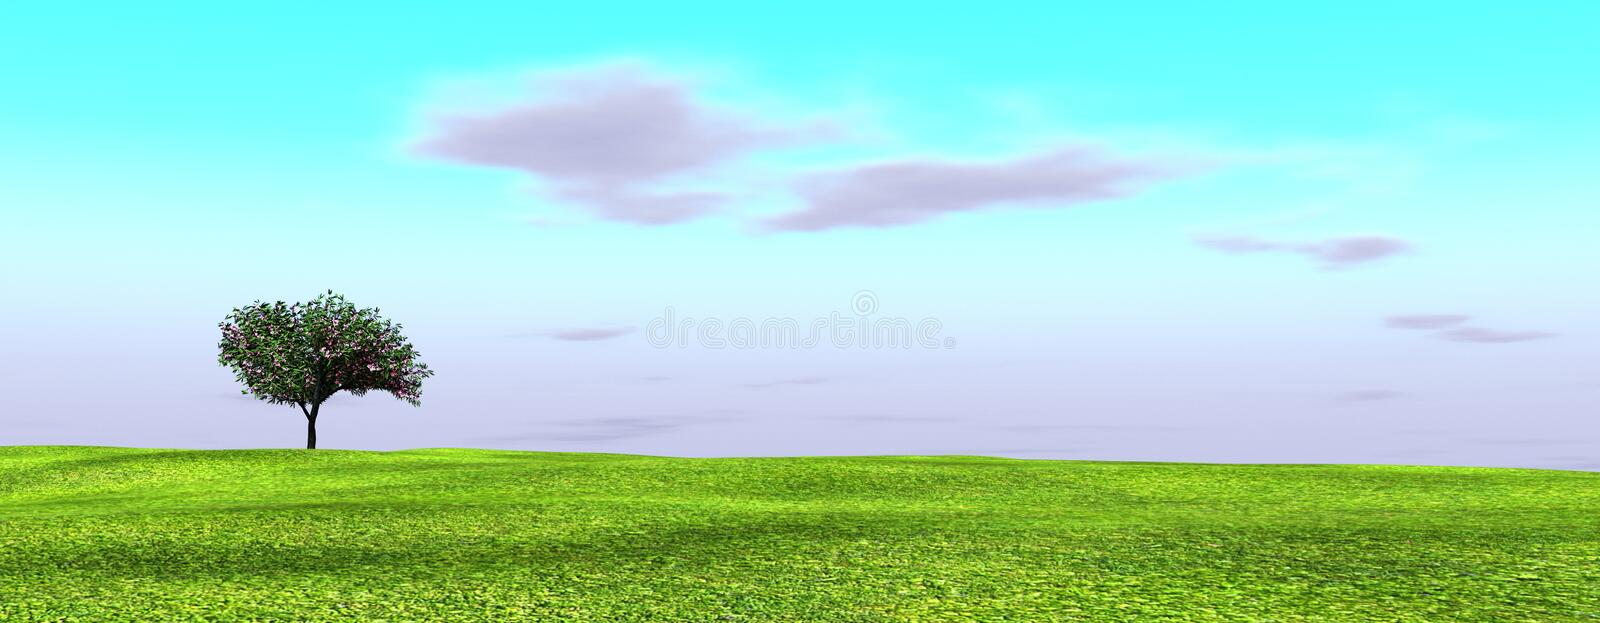 Alone Oleandre Royalty Free Stock Image